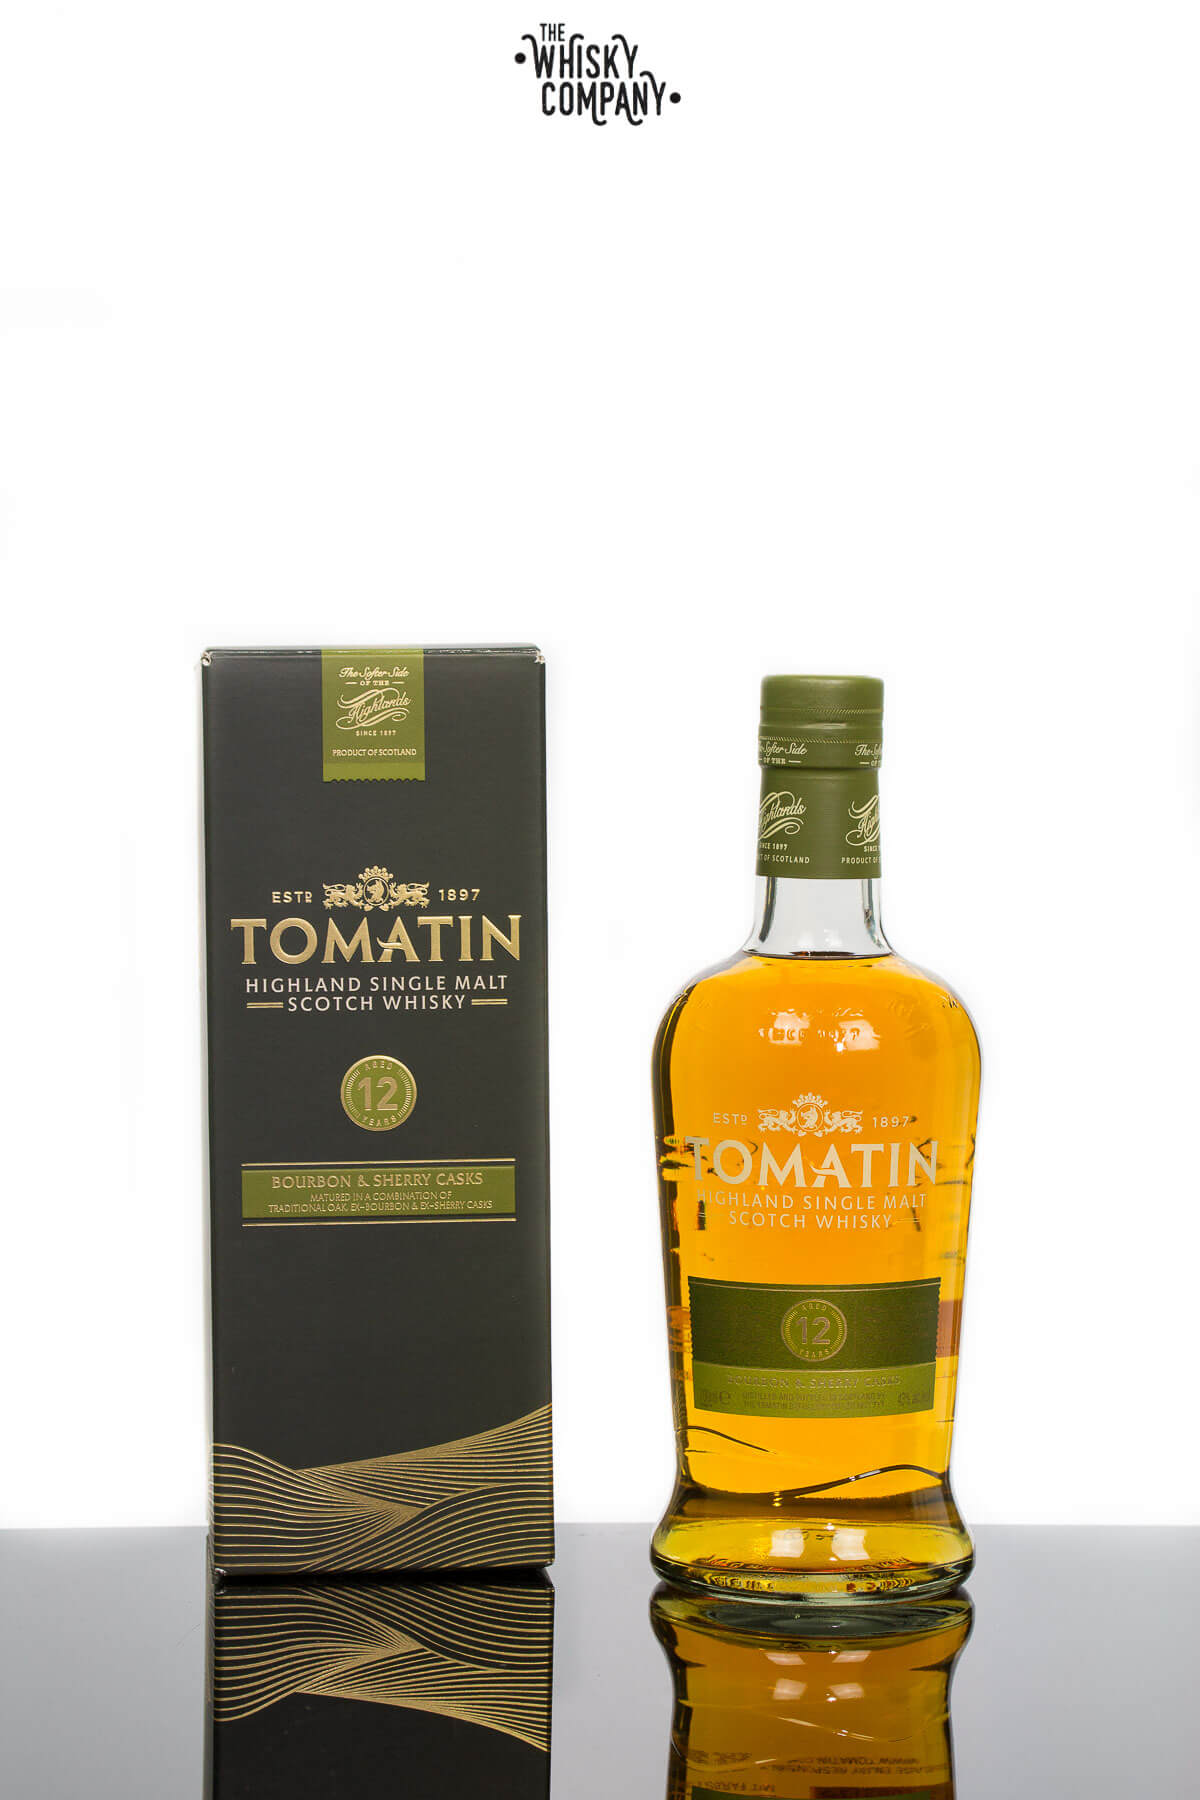 Tomatin 12 Years Old Highland Single Malt Scotch Whisky